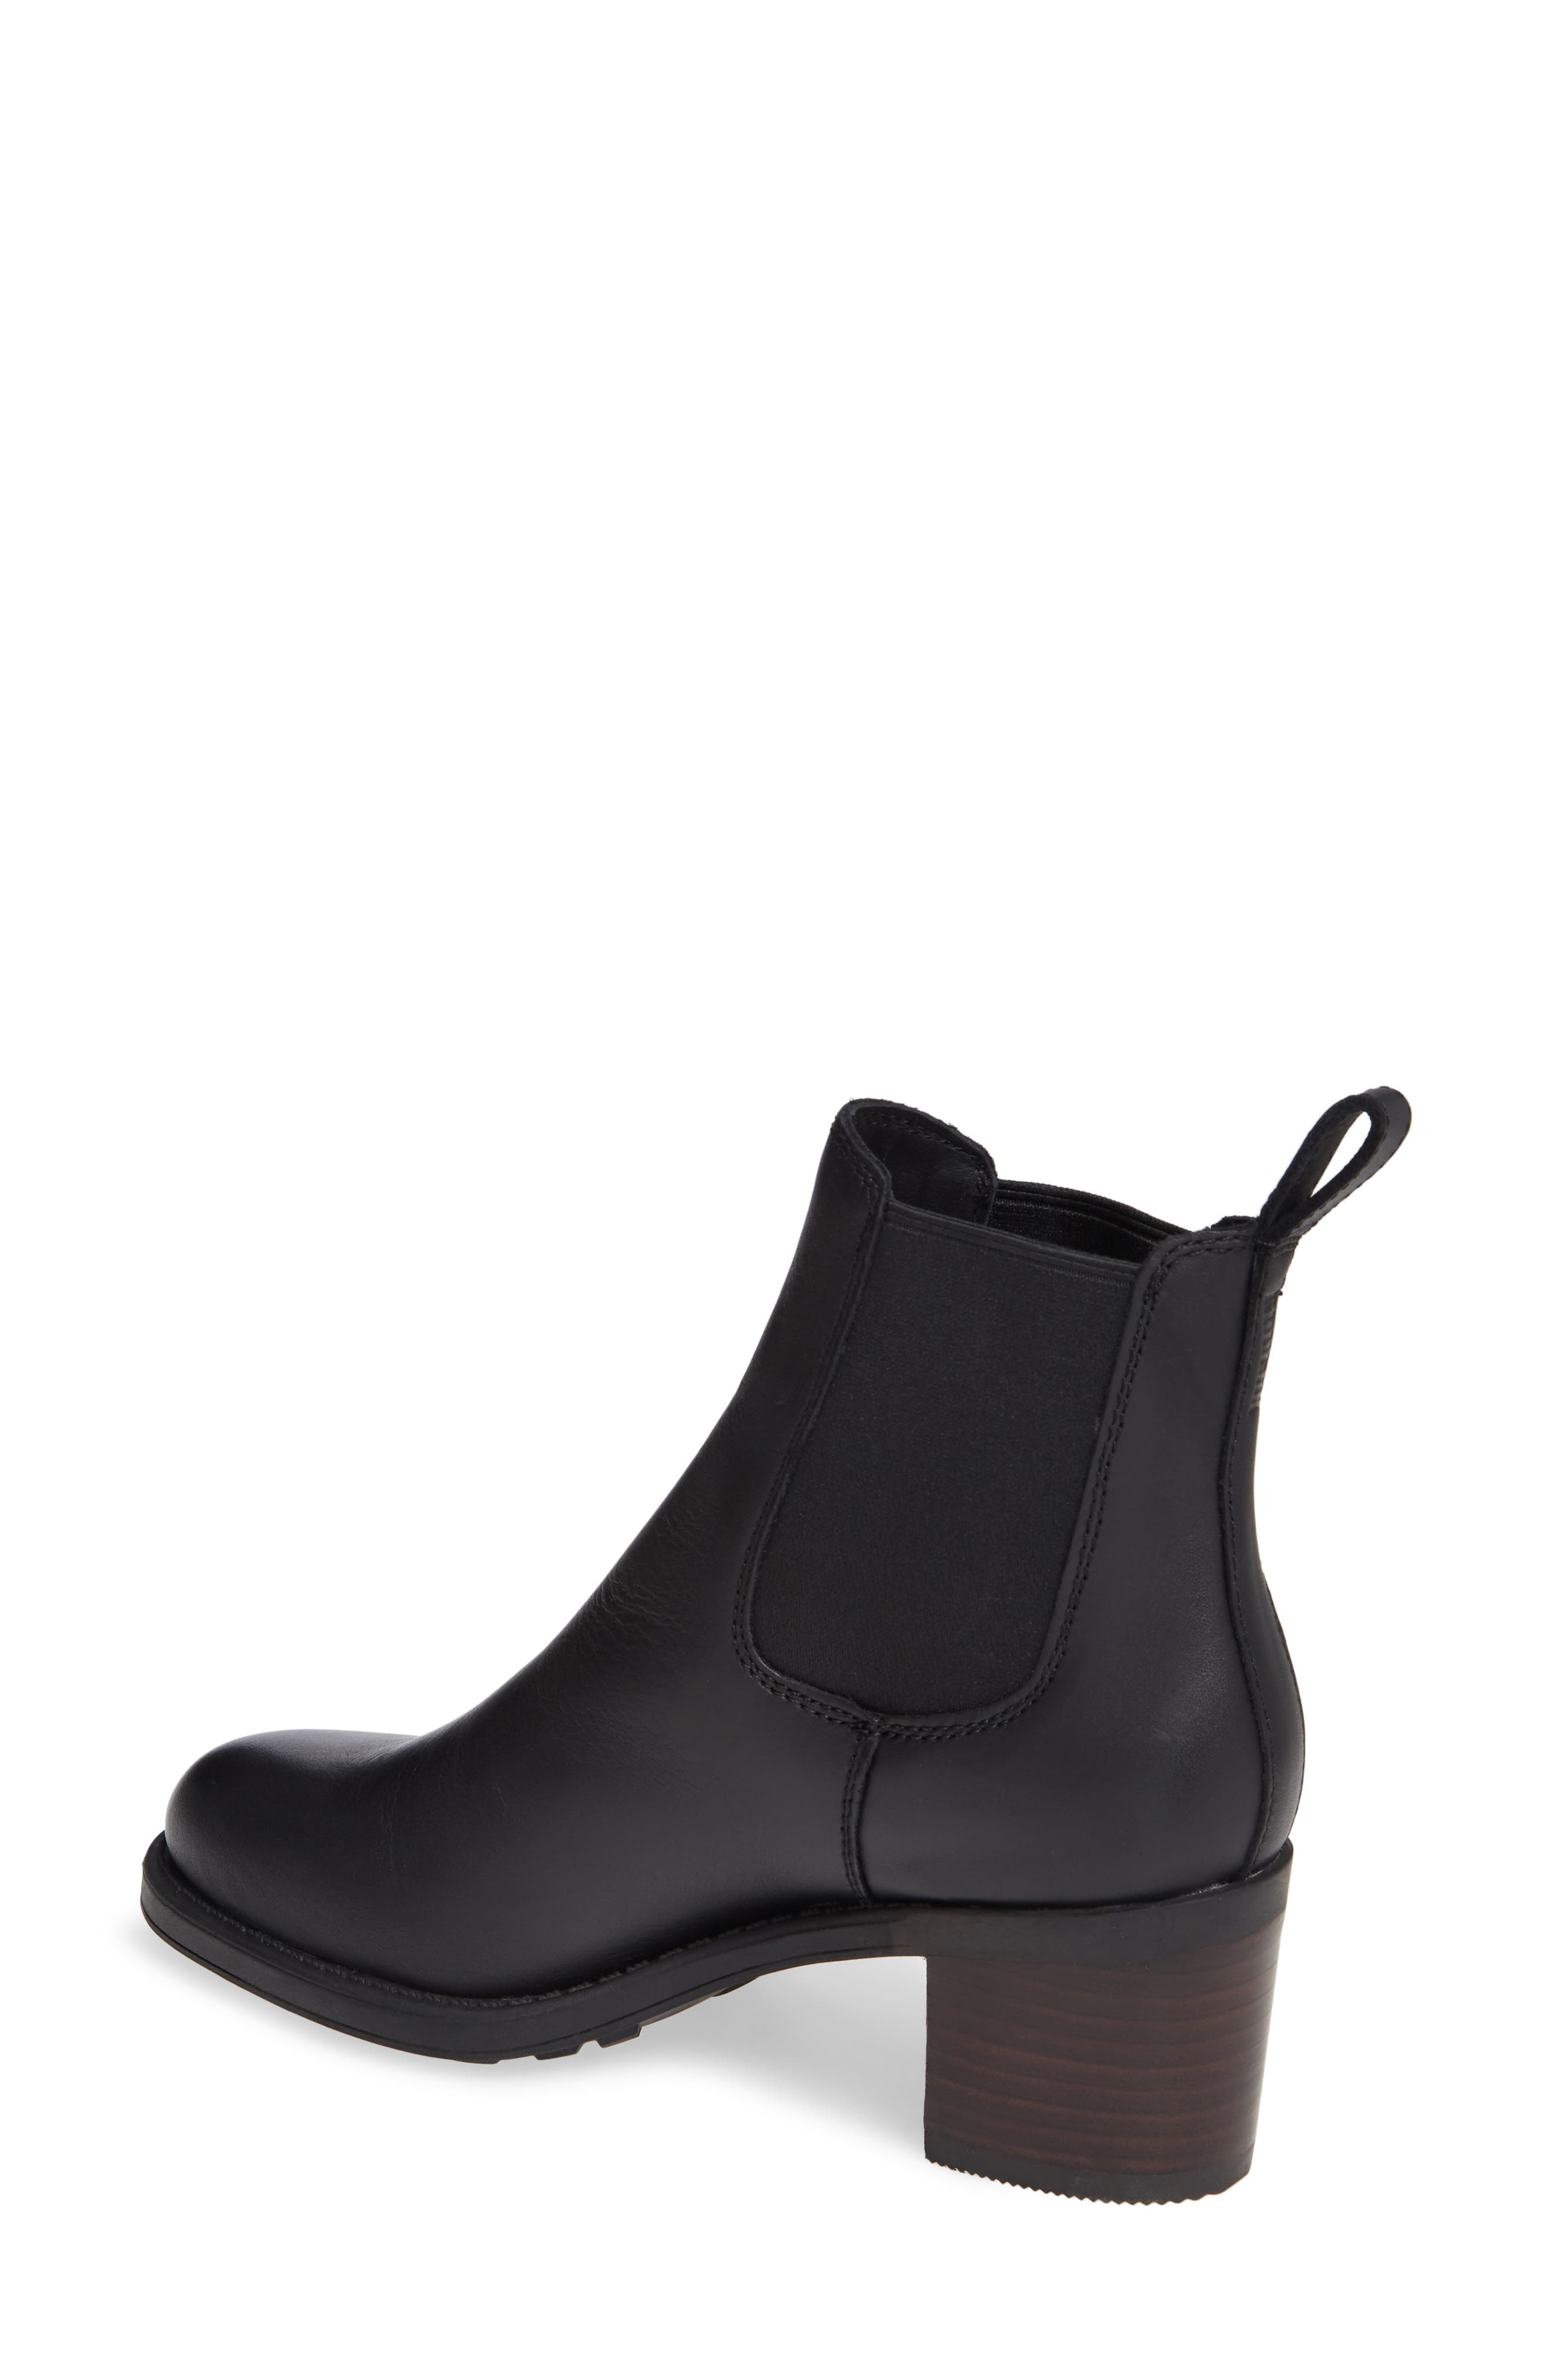 affffe392d49 Women s Cougar Booties   Ankle Boots